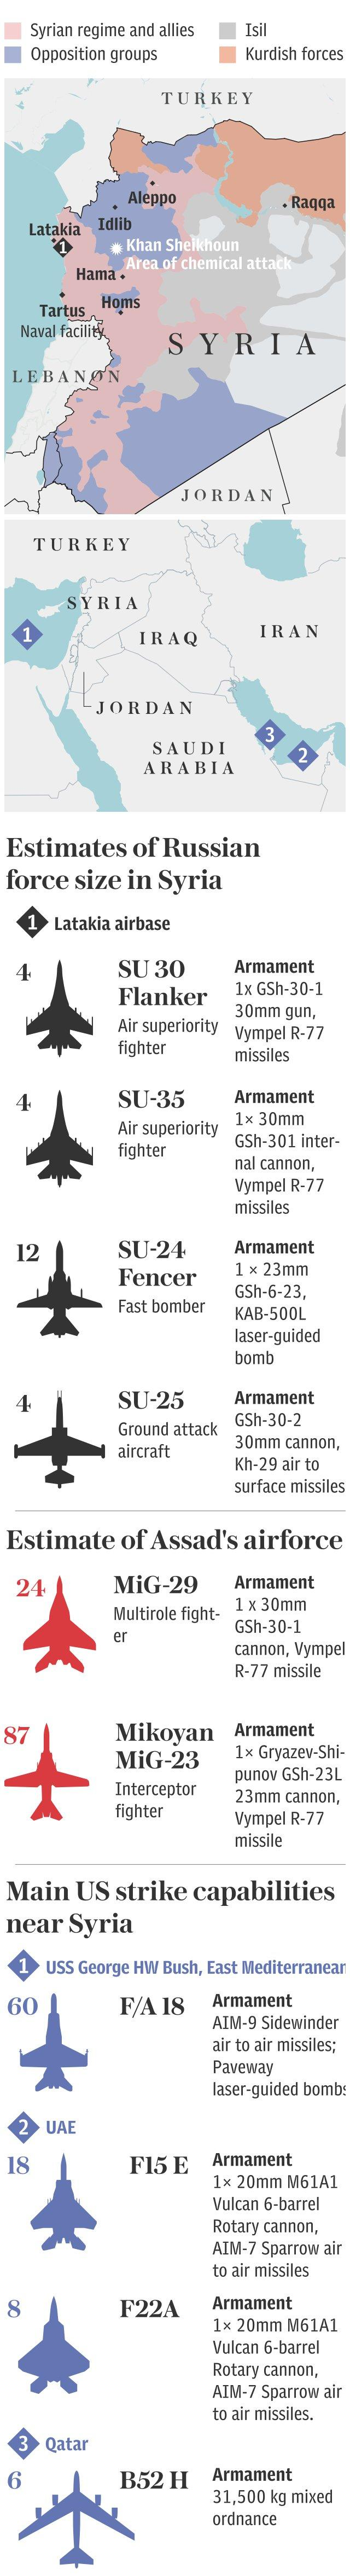 Syrian control and airforce capabilities